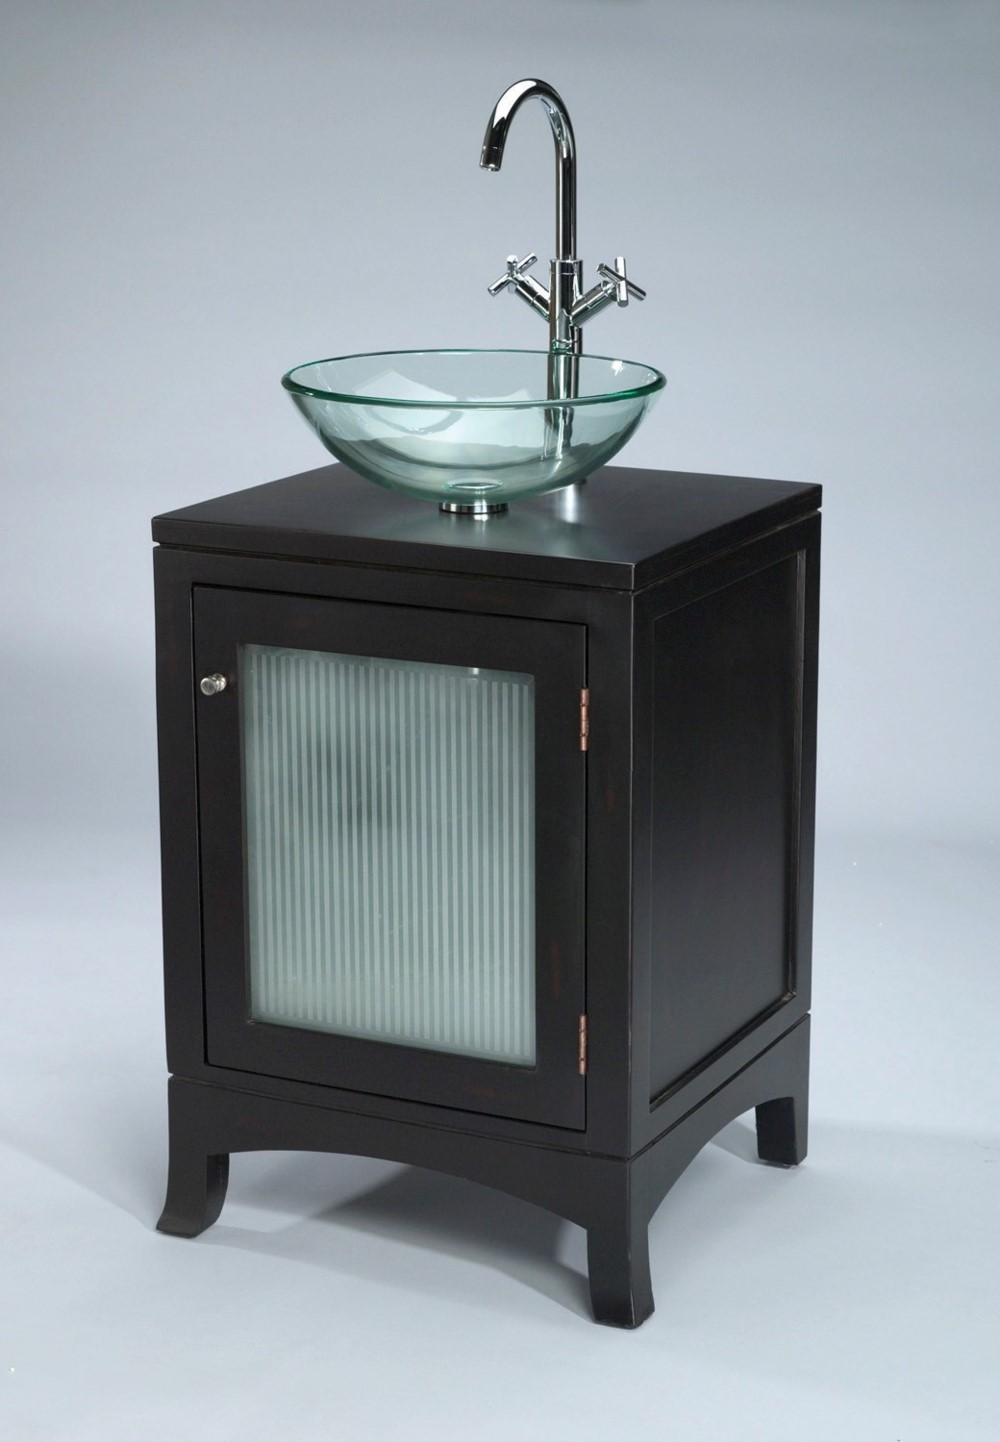 Antique Elements Collection Vanity with BOWL Black Finish